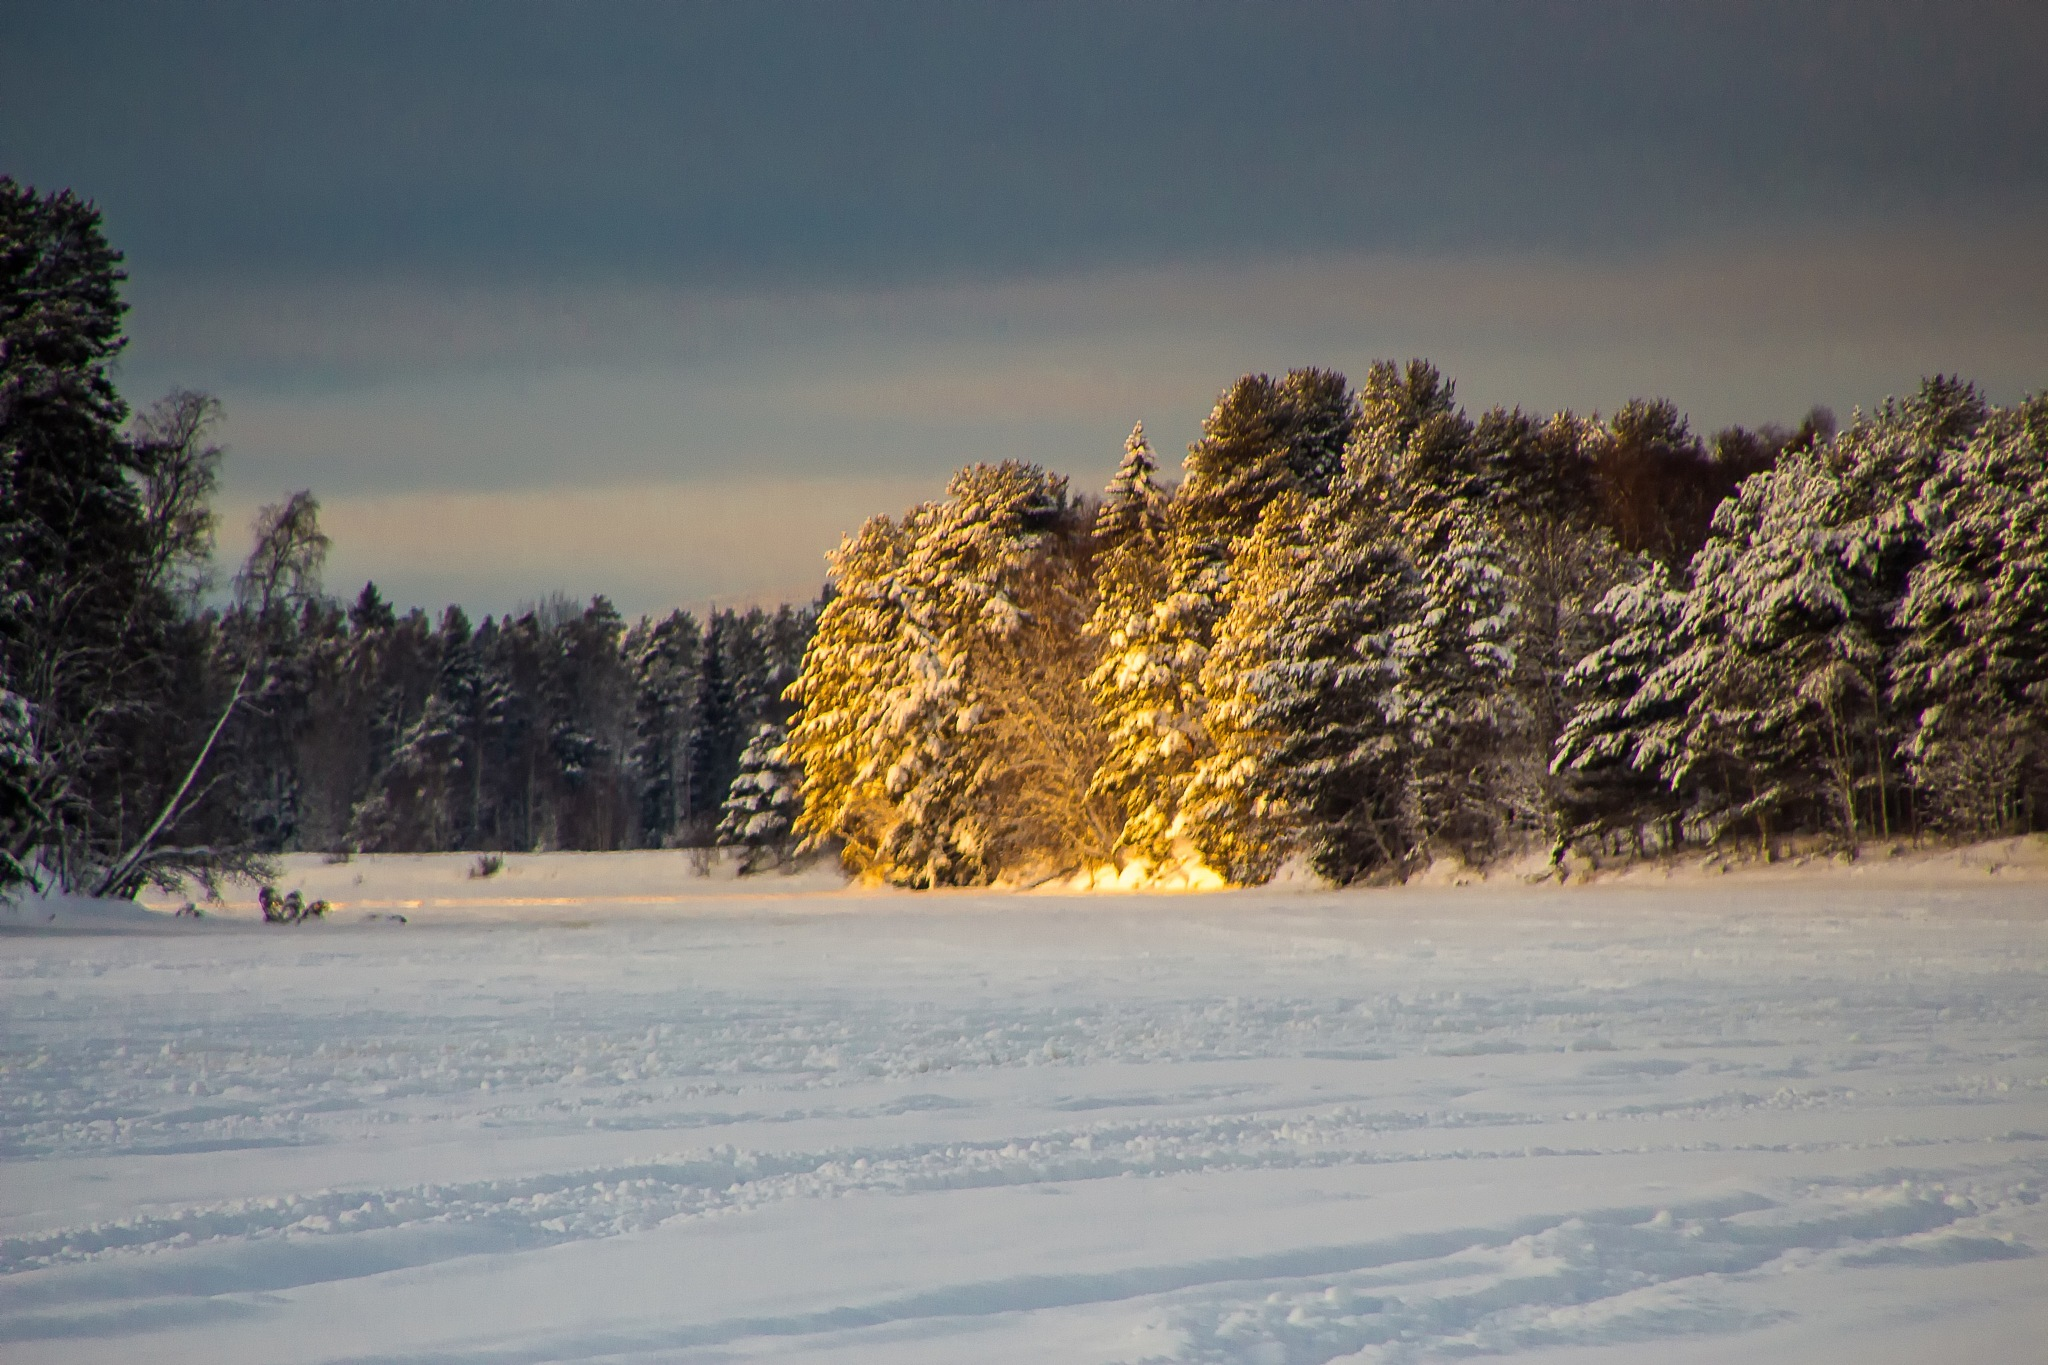 Sunshine on the winter trees by Carl Hult